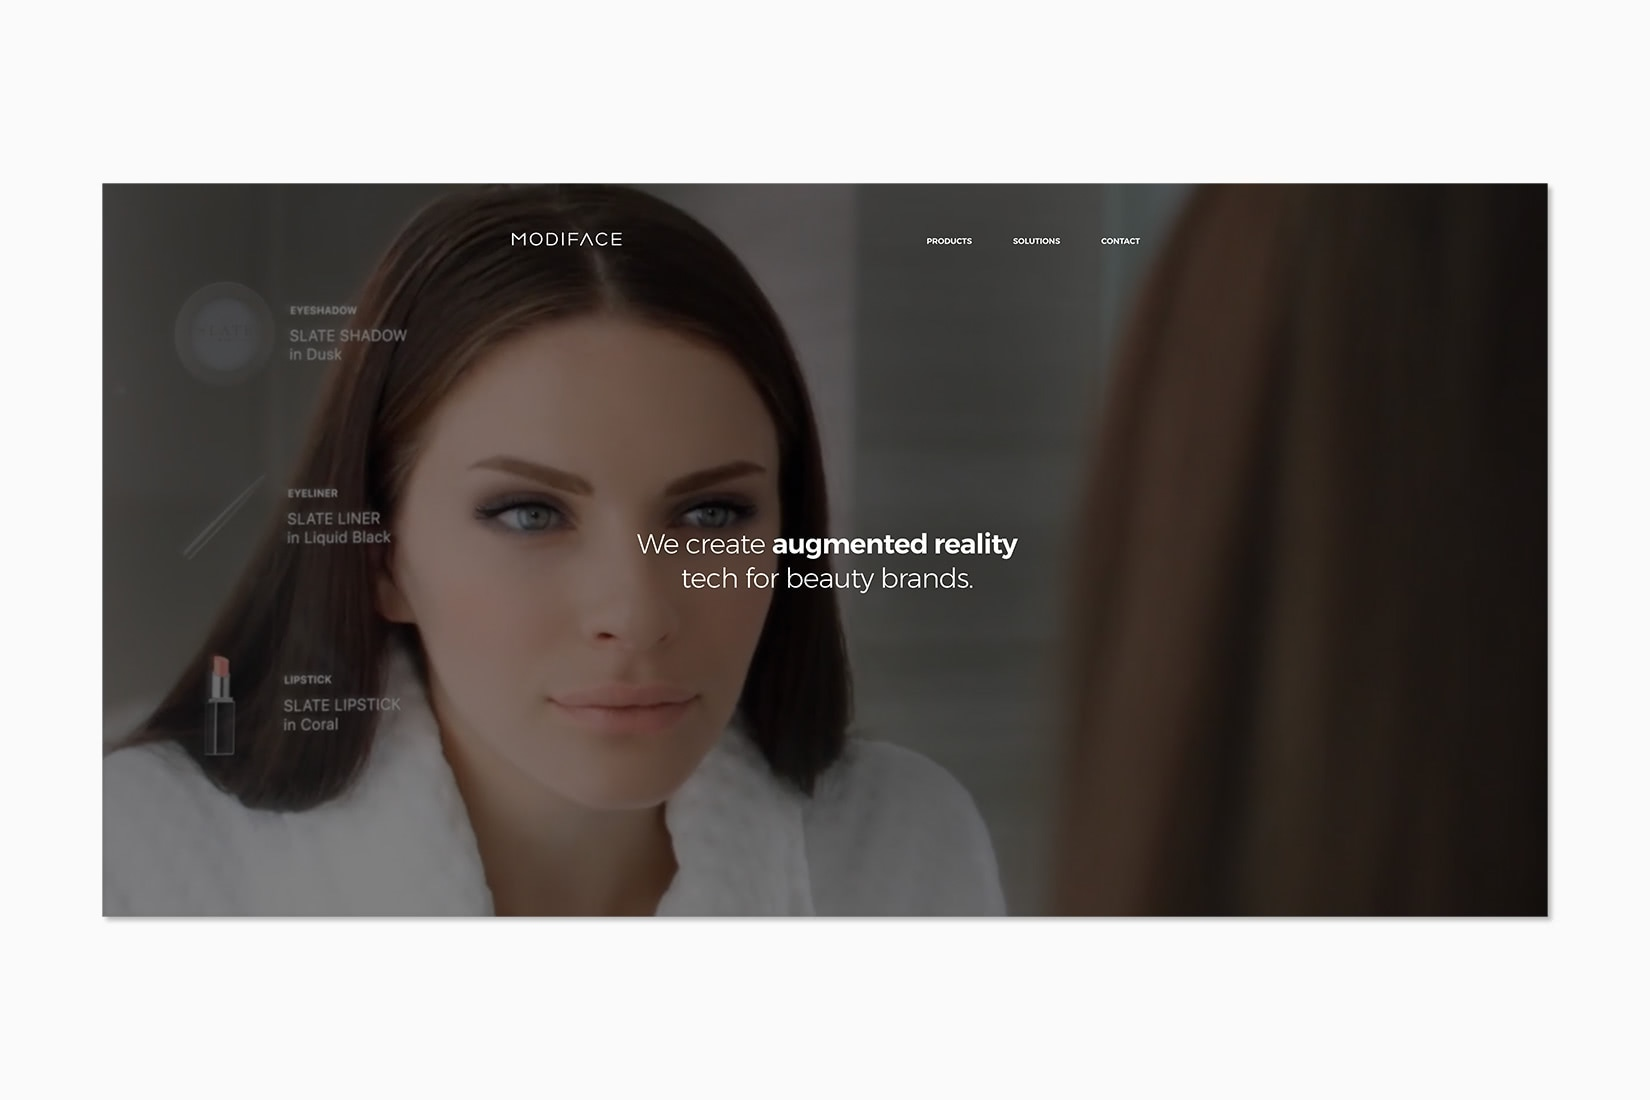 online luxury beauty retail l'oreal modiface augmented reality - Luxe Digital